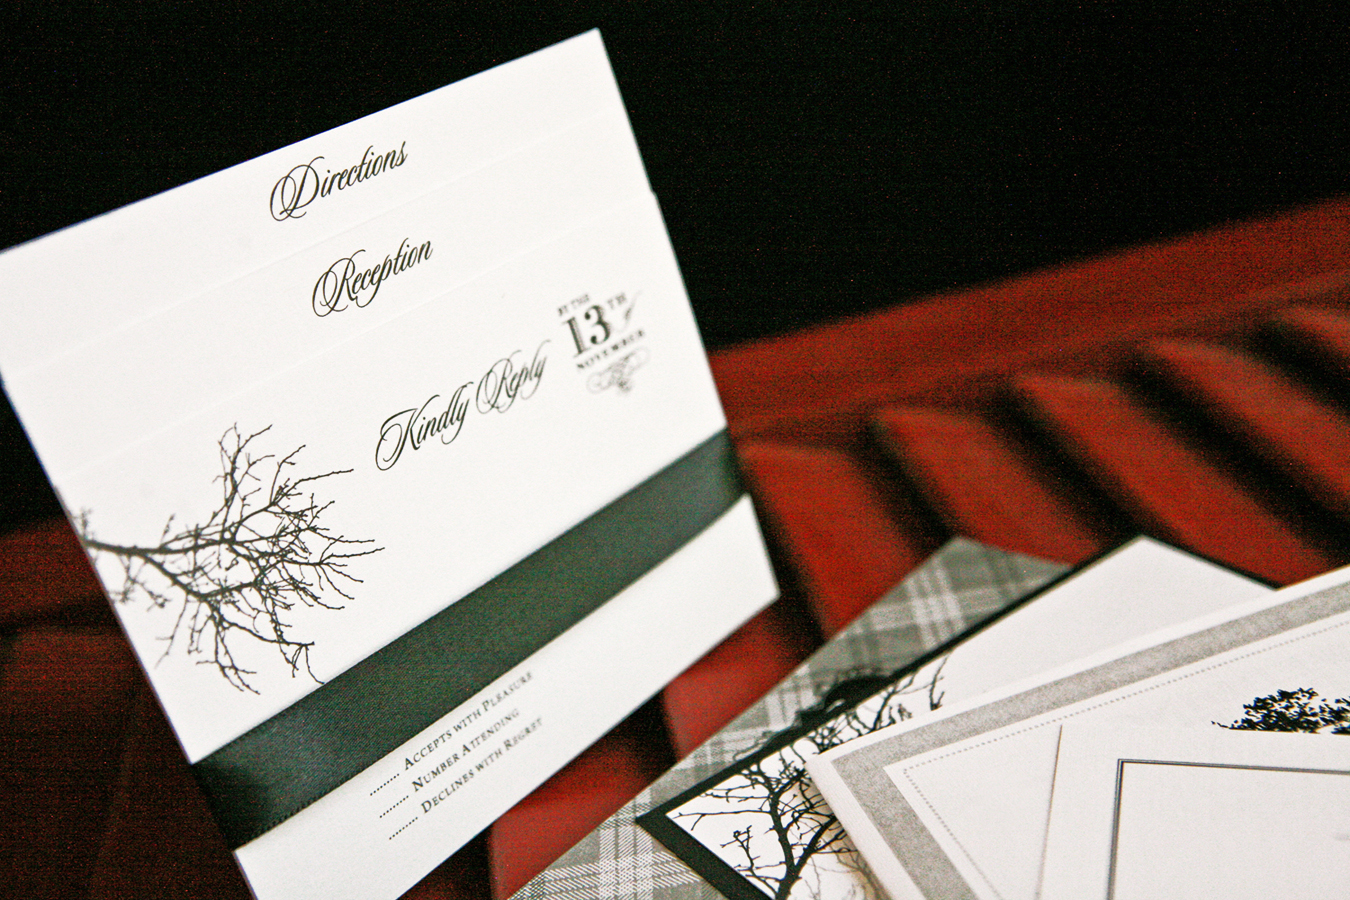 Stationery, white, black, invitation, Invitations, Outdoor, Menu, Monogram, Wedding, Program, Water, Tree, Golf, Plaid, Dinner, Rehearsal, Bottle